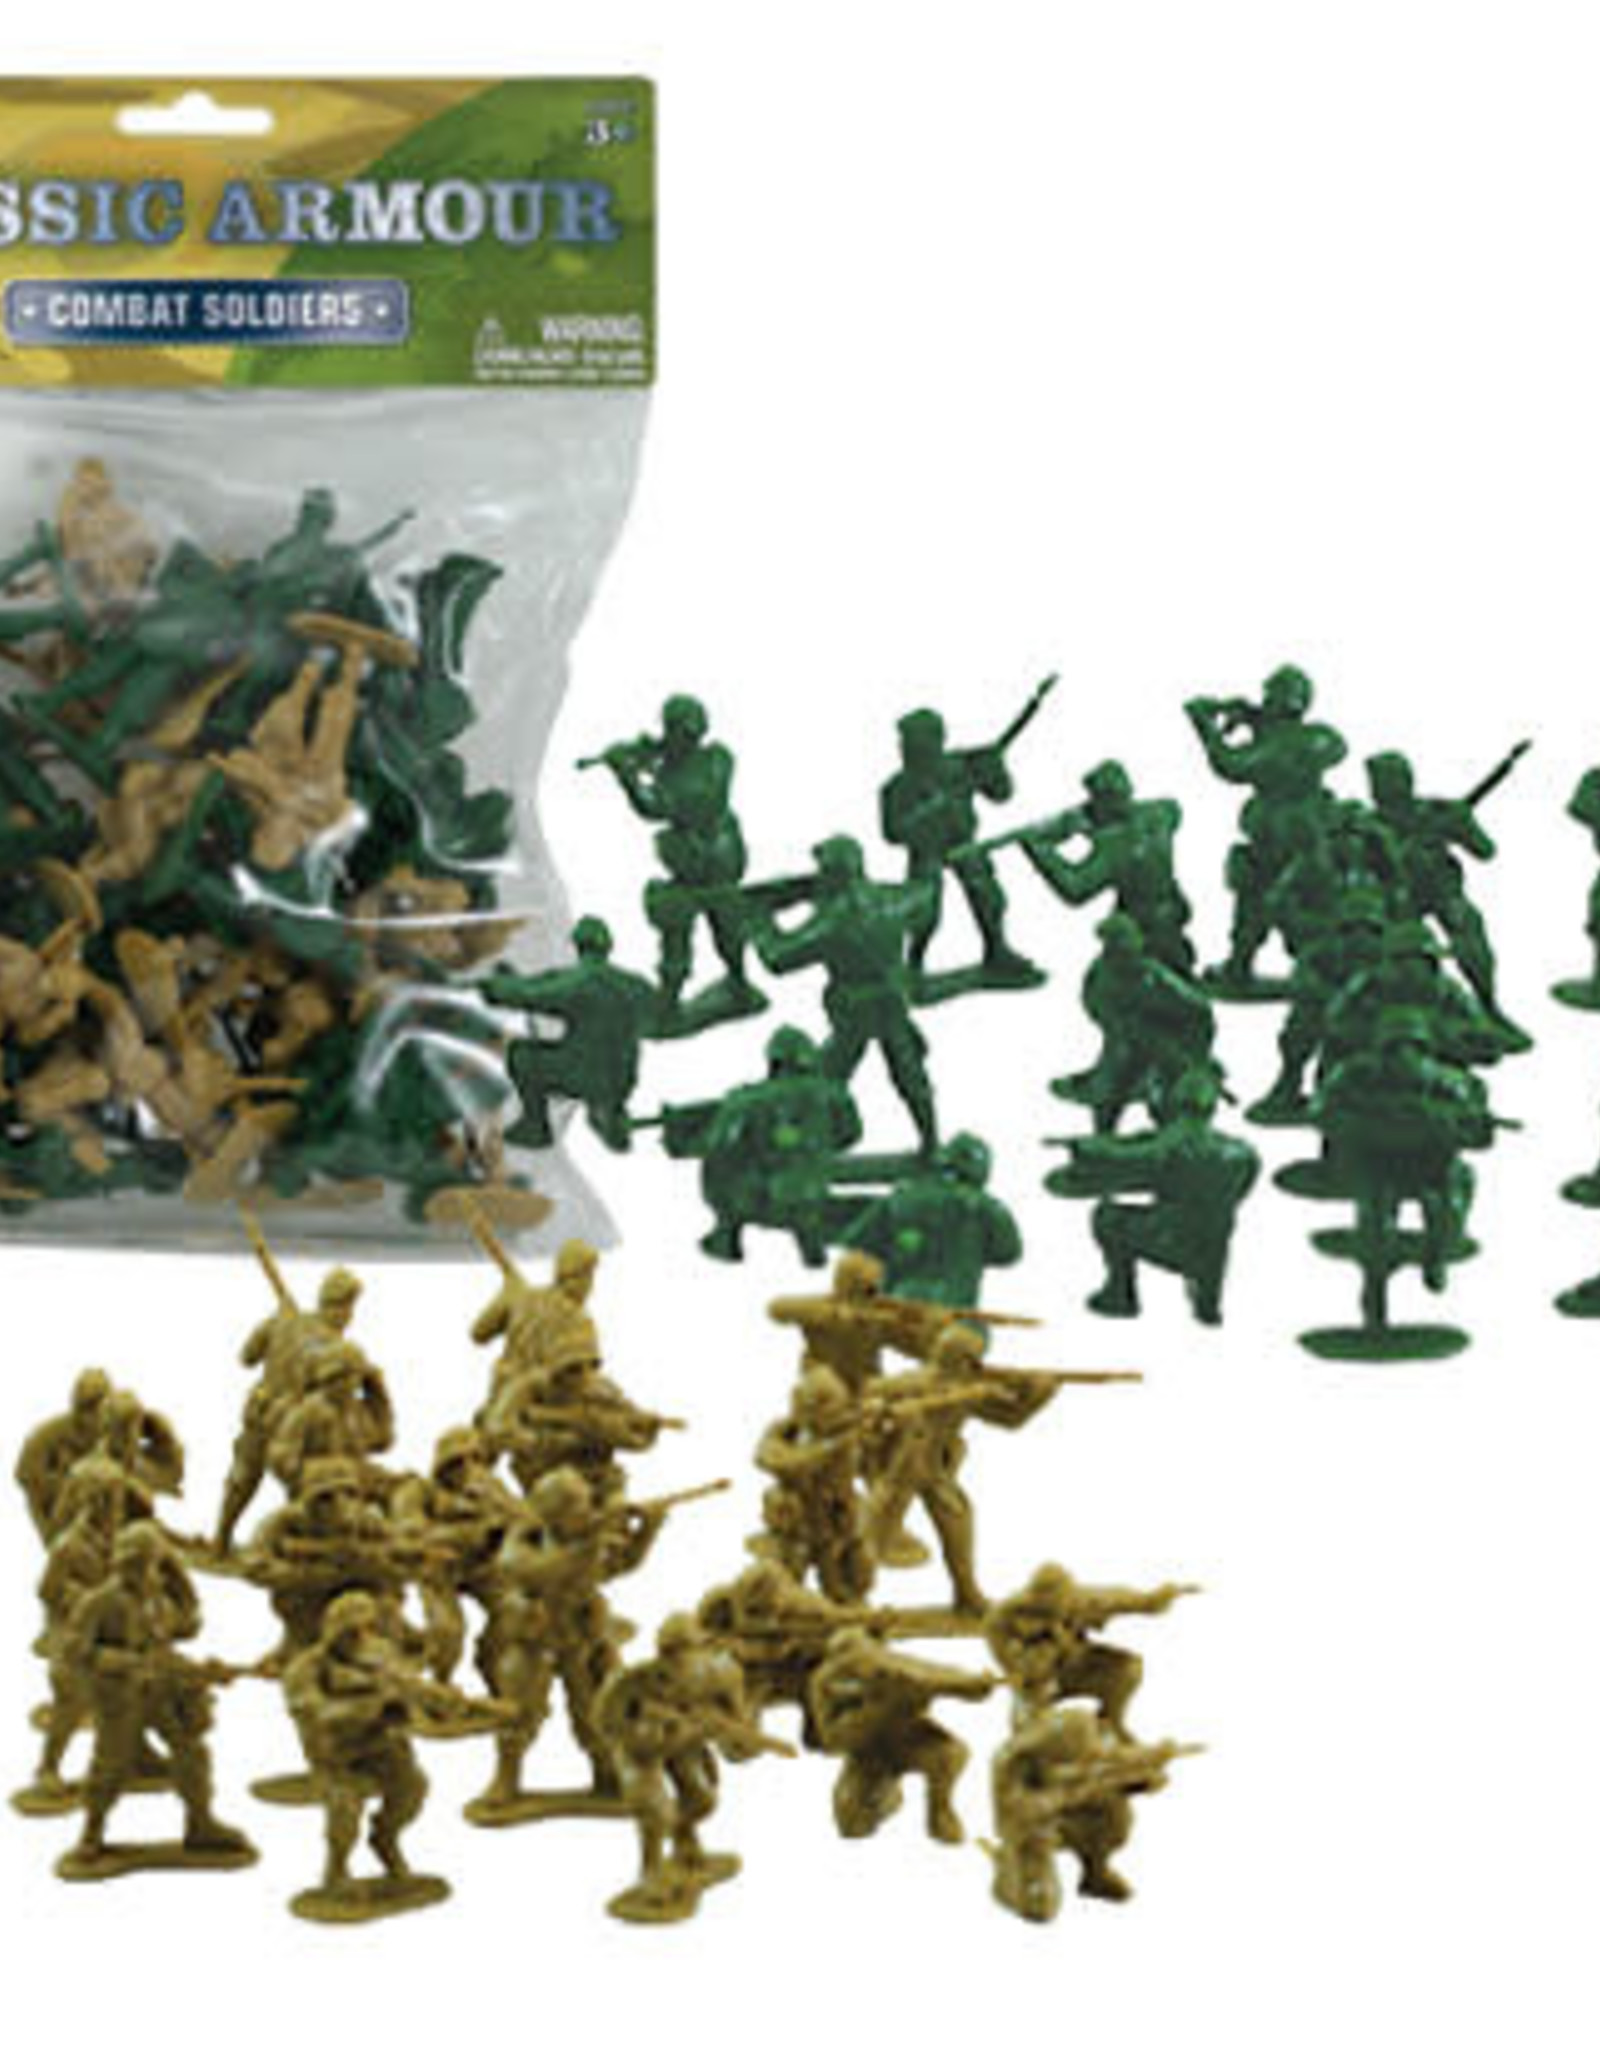 WowToyz Soldiers Combat 2 colors